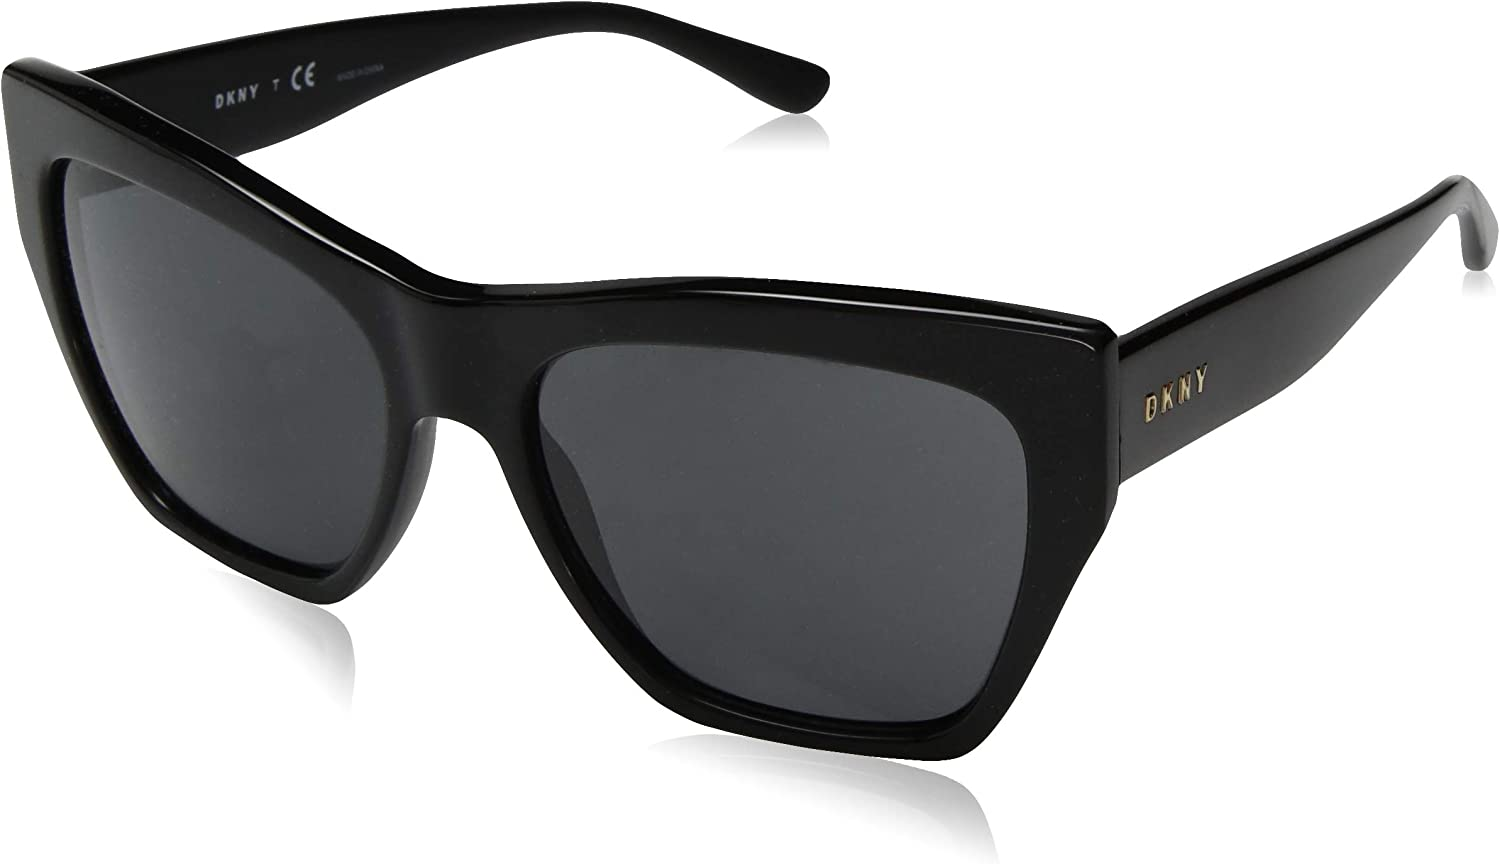 DKNY Women's 0dy4156 Square Sunglasses, Black, 58.0 mm